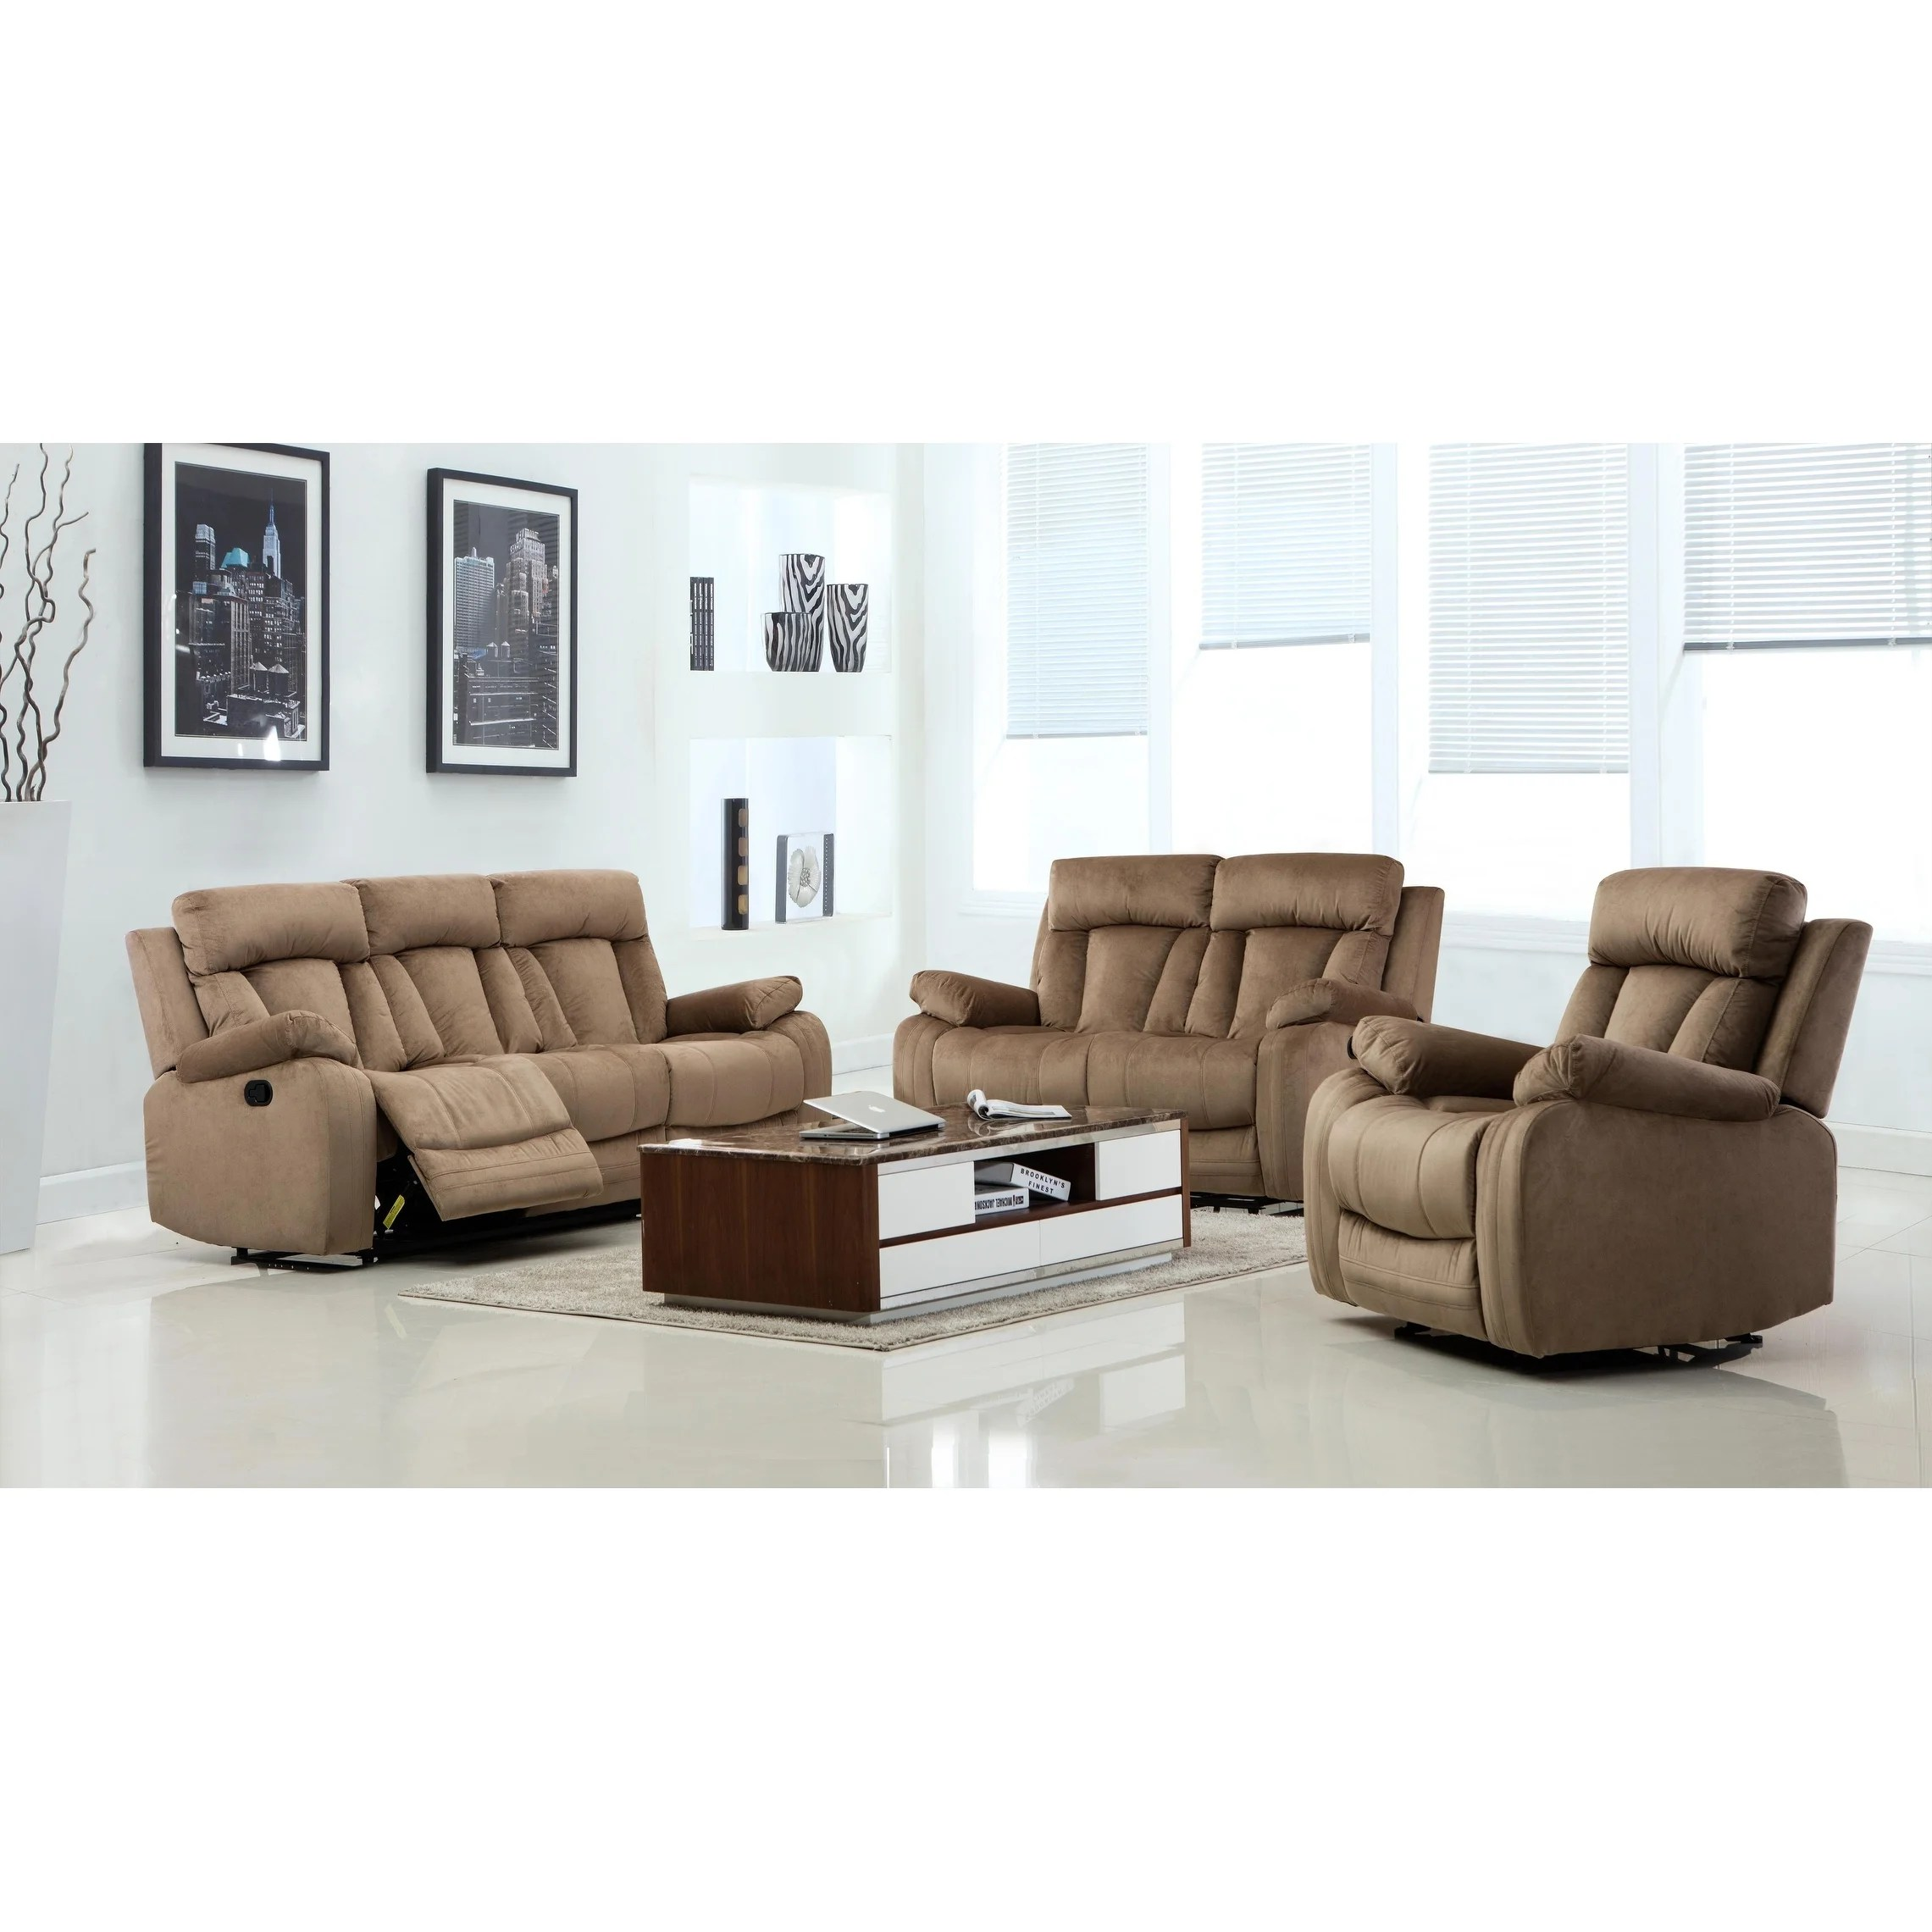 Gu Industries Microfiber Fabric Upholstered 3 Piece Living Room Recliner Sets